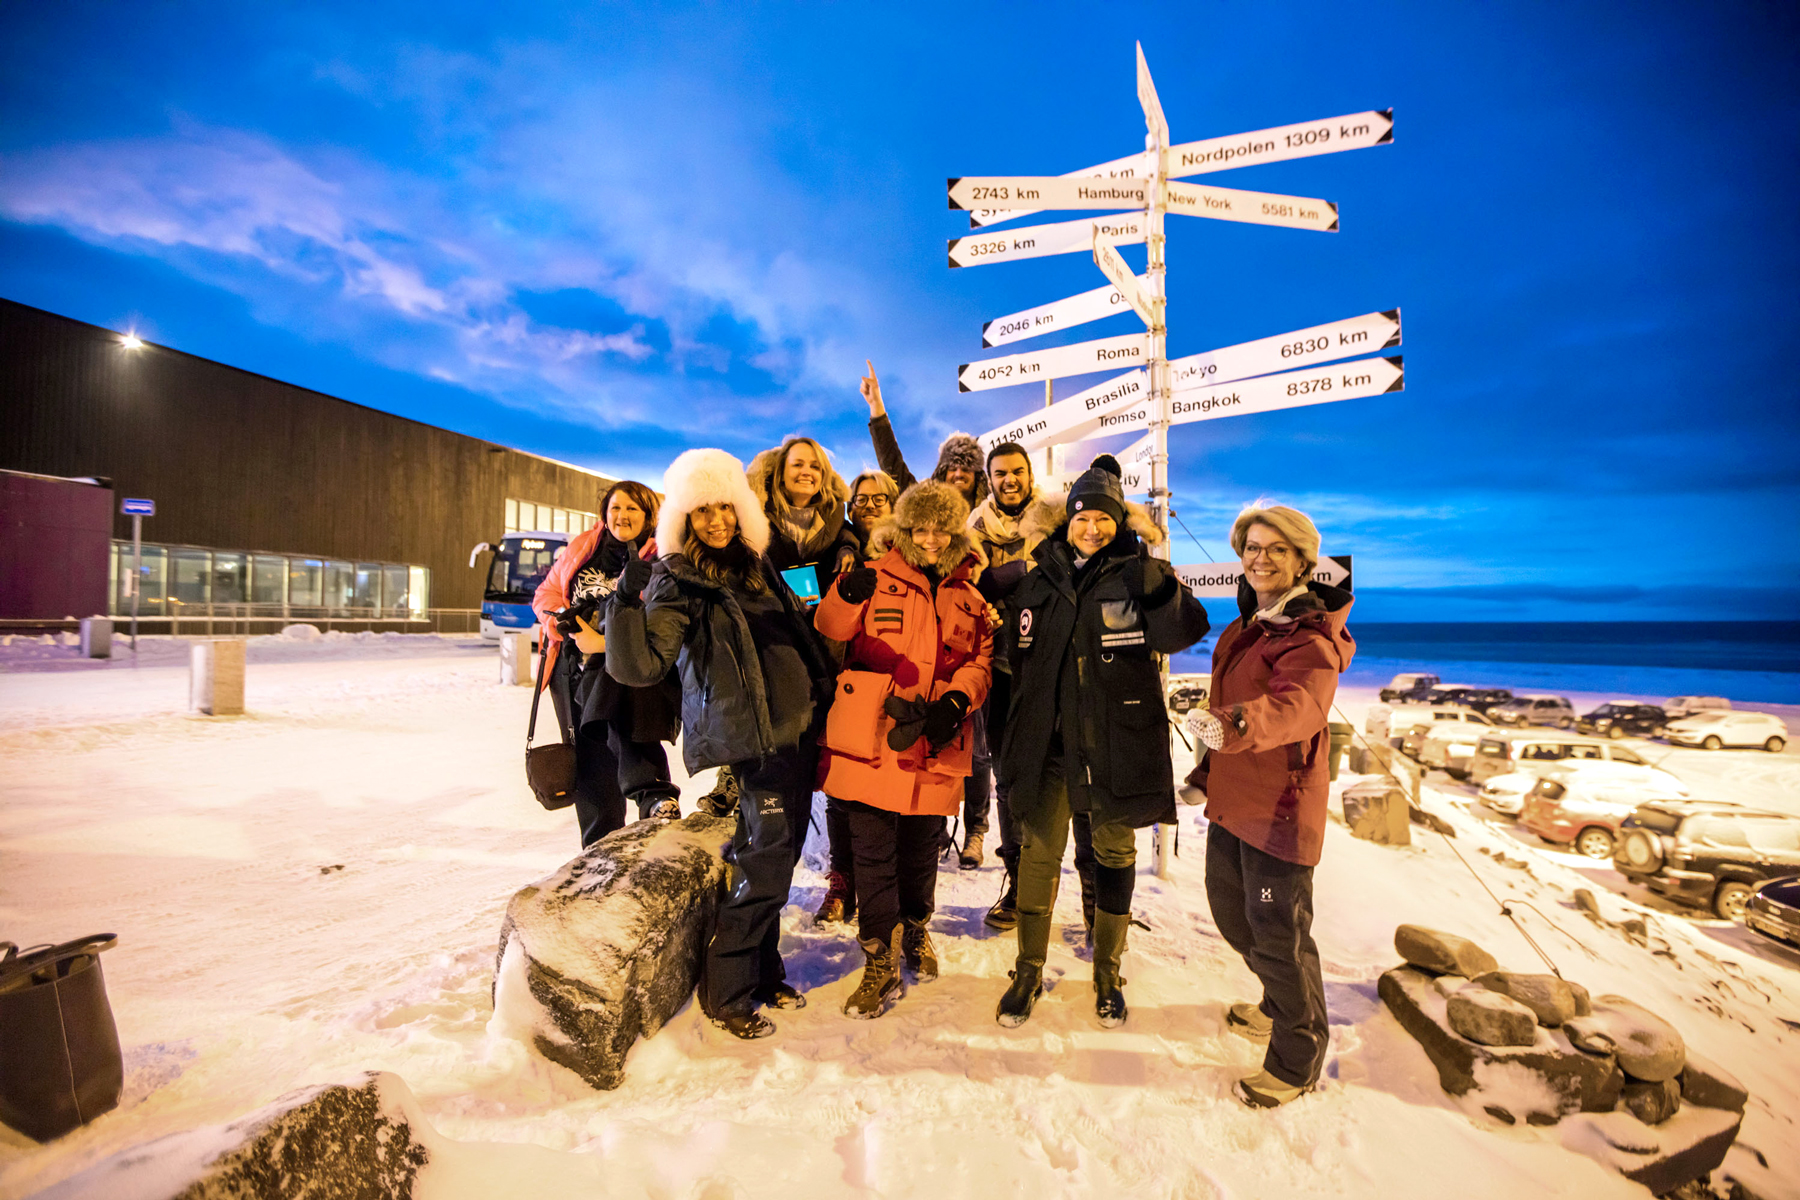 martha with group of explorers under sign pointing to major cities